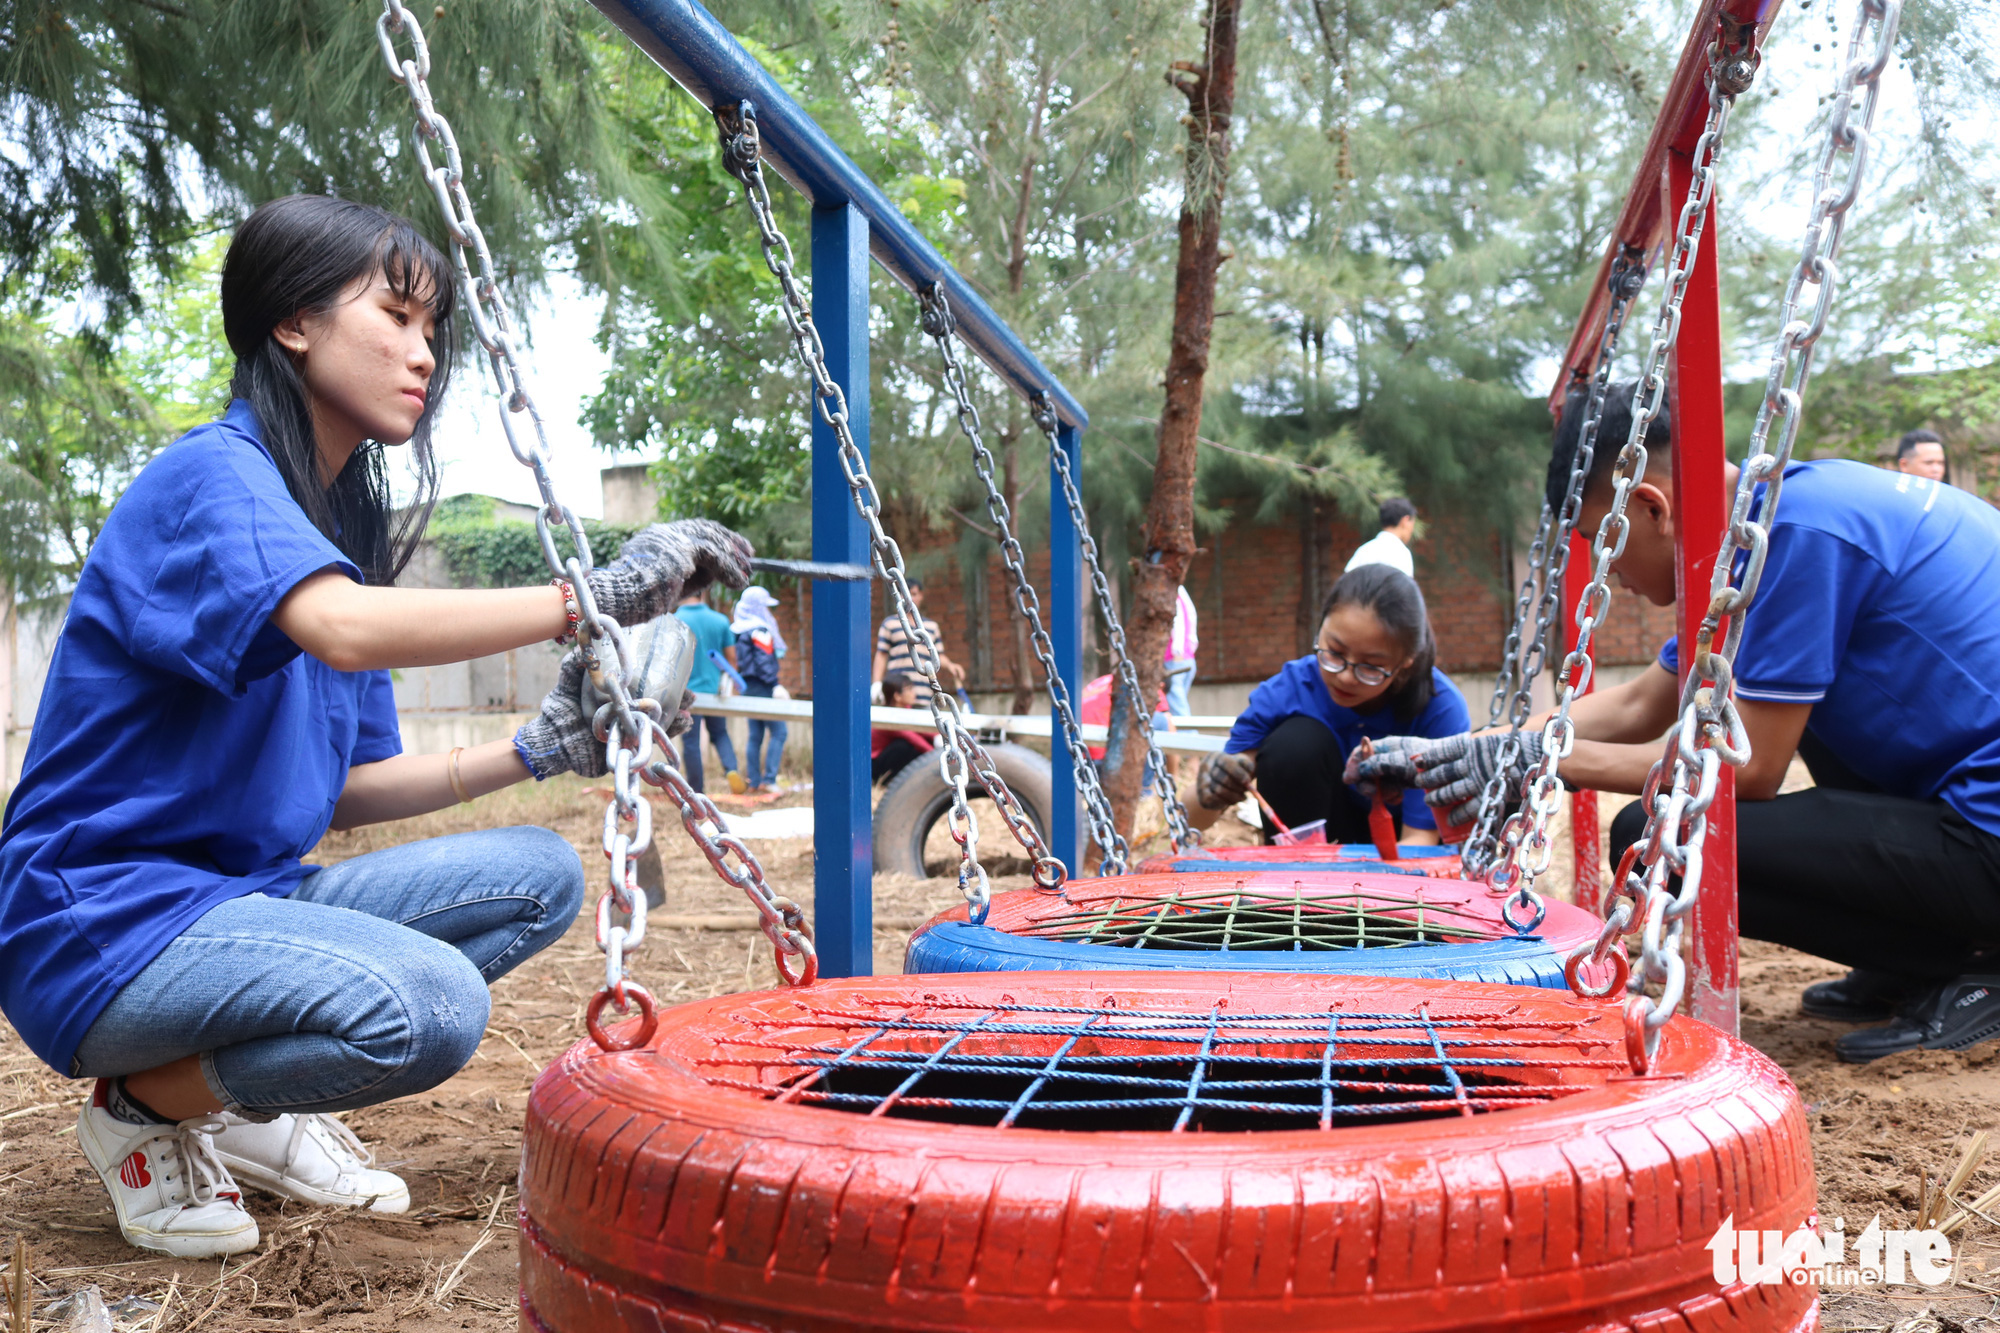 Volunteers apply the last coat of paint on a balance walk toy made from upcycled old tires in Nha Be District, Ho Chi Minh City, Vietnam. Photo: Hoang An / Tuoi Tre